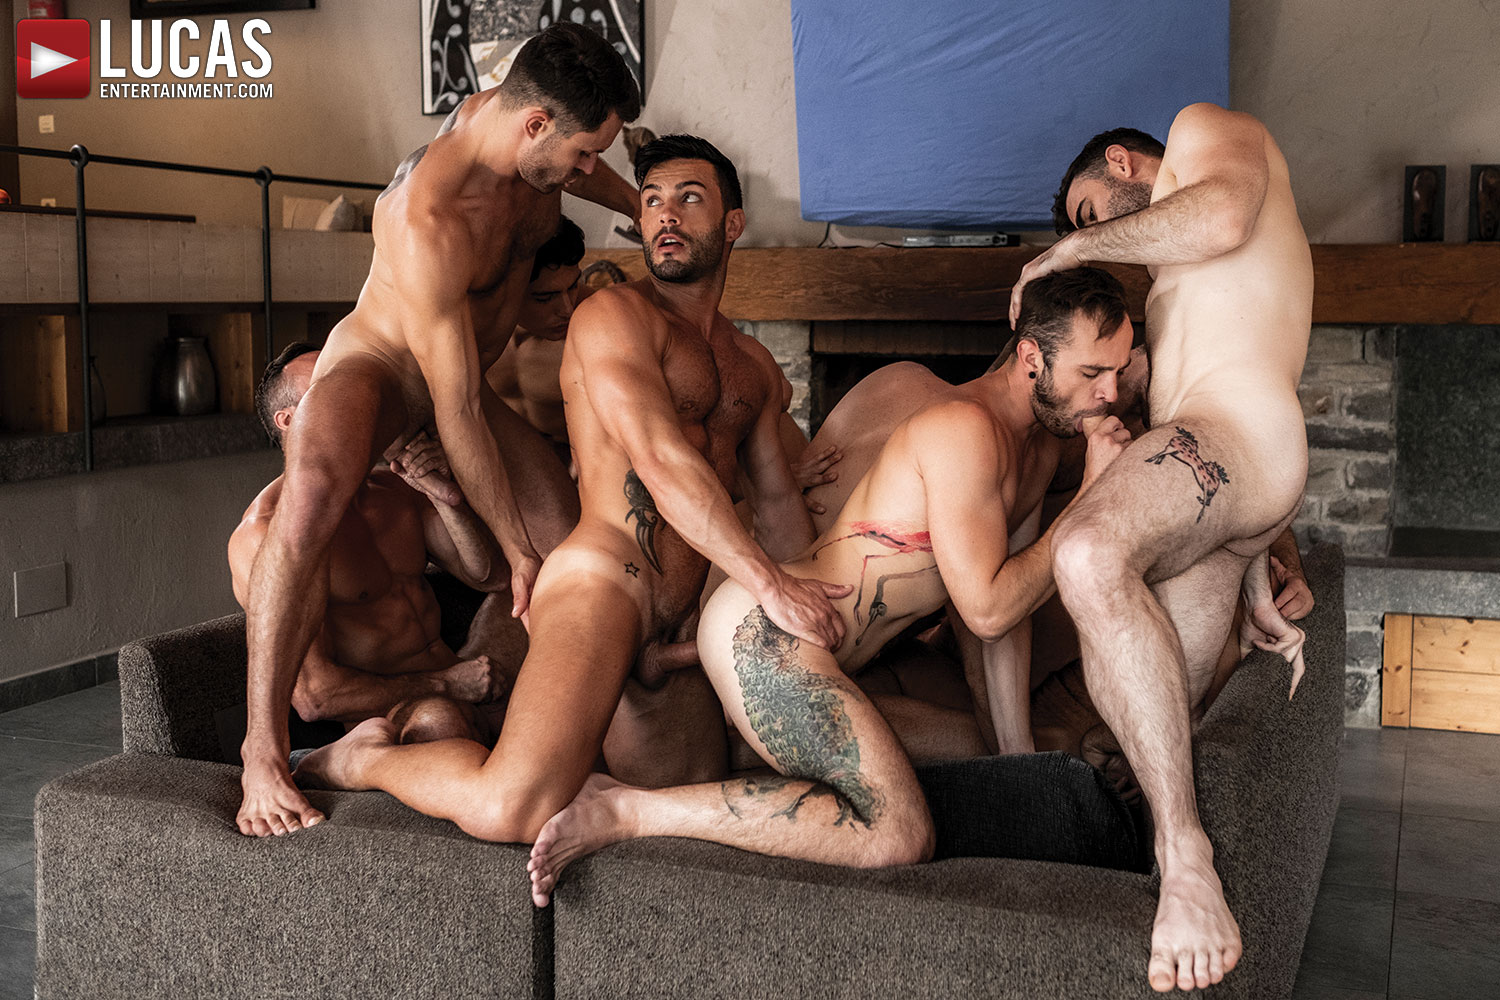 11-Man Bareback Guy Pile - Gay Movies - Lucas Entertainment